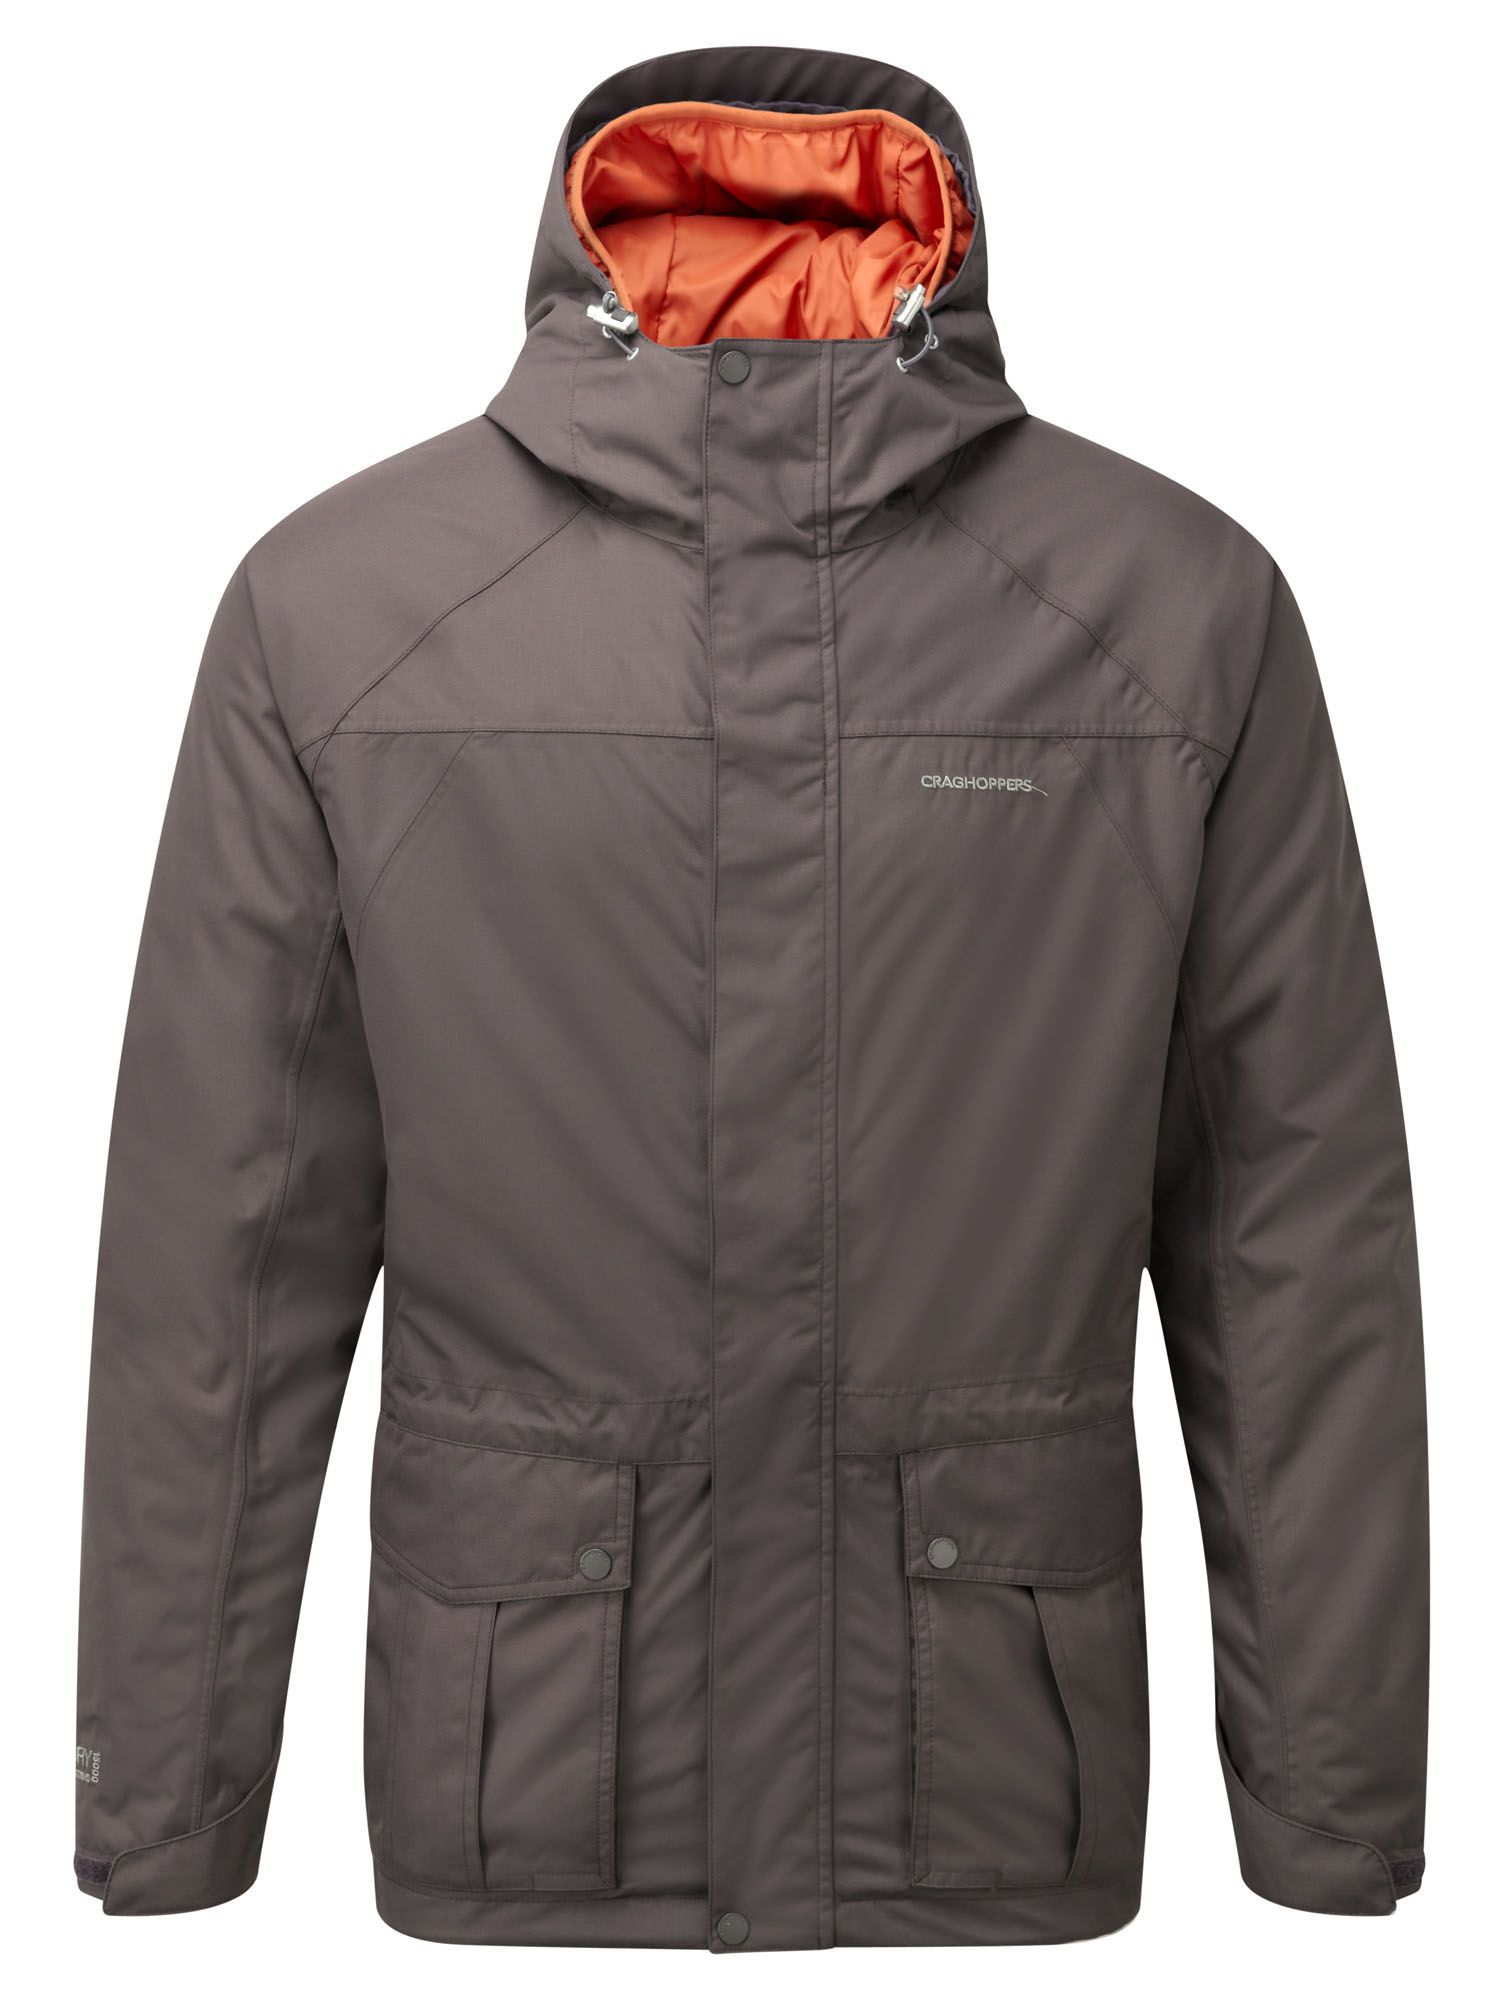 Mens Craghoppers Kiwi 3in1 CompLite Waterproof Jacket Brown